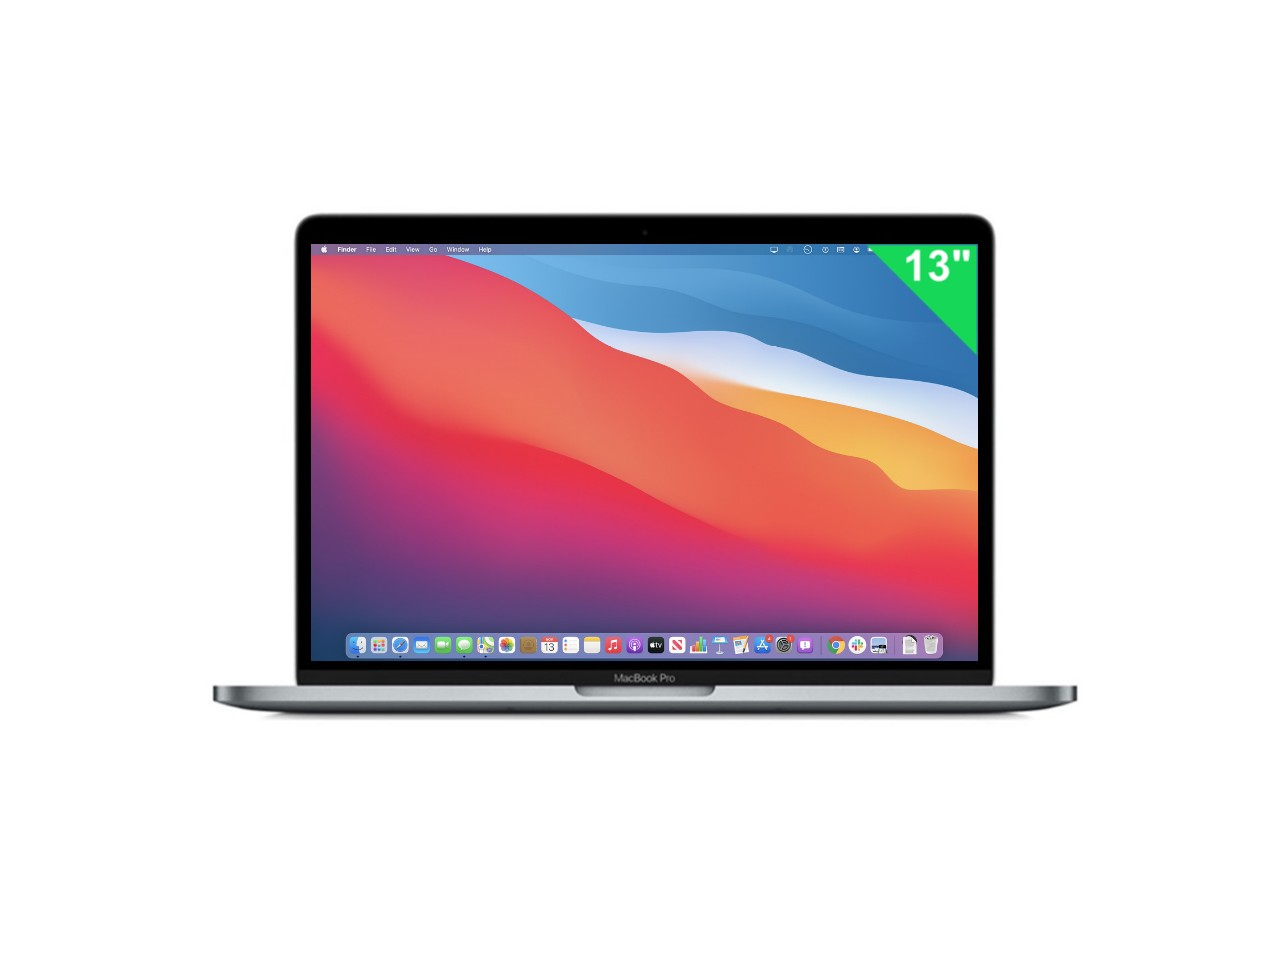 NOVÝ 13 QuadCore Apple MacBook Pro 2020 SpaceGray TouchBar ID: 2084512-1